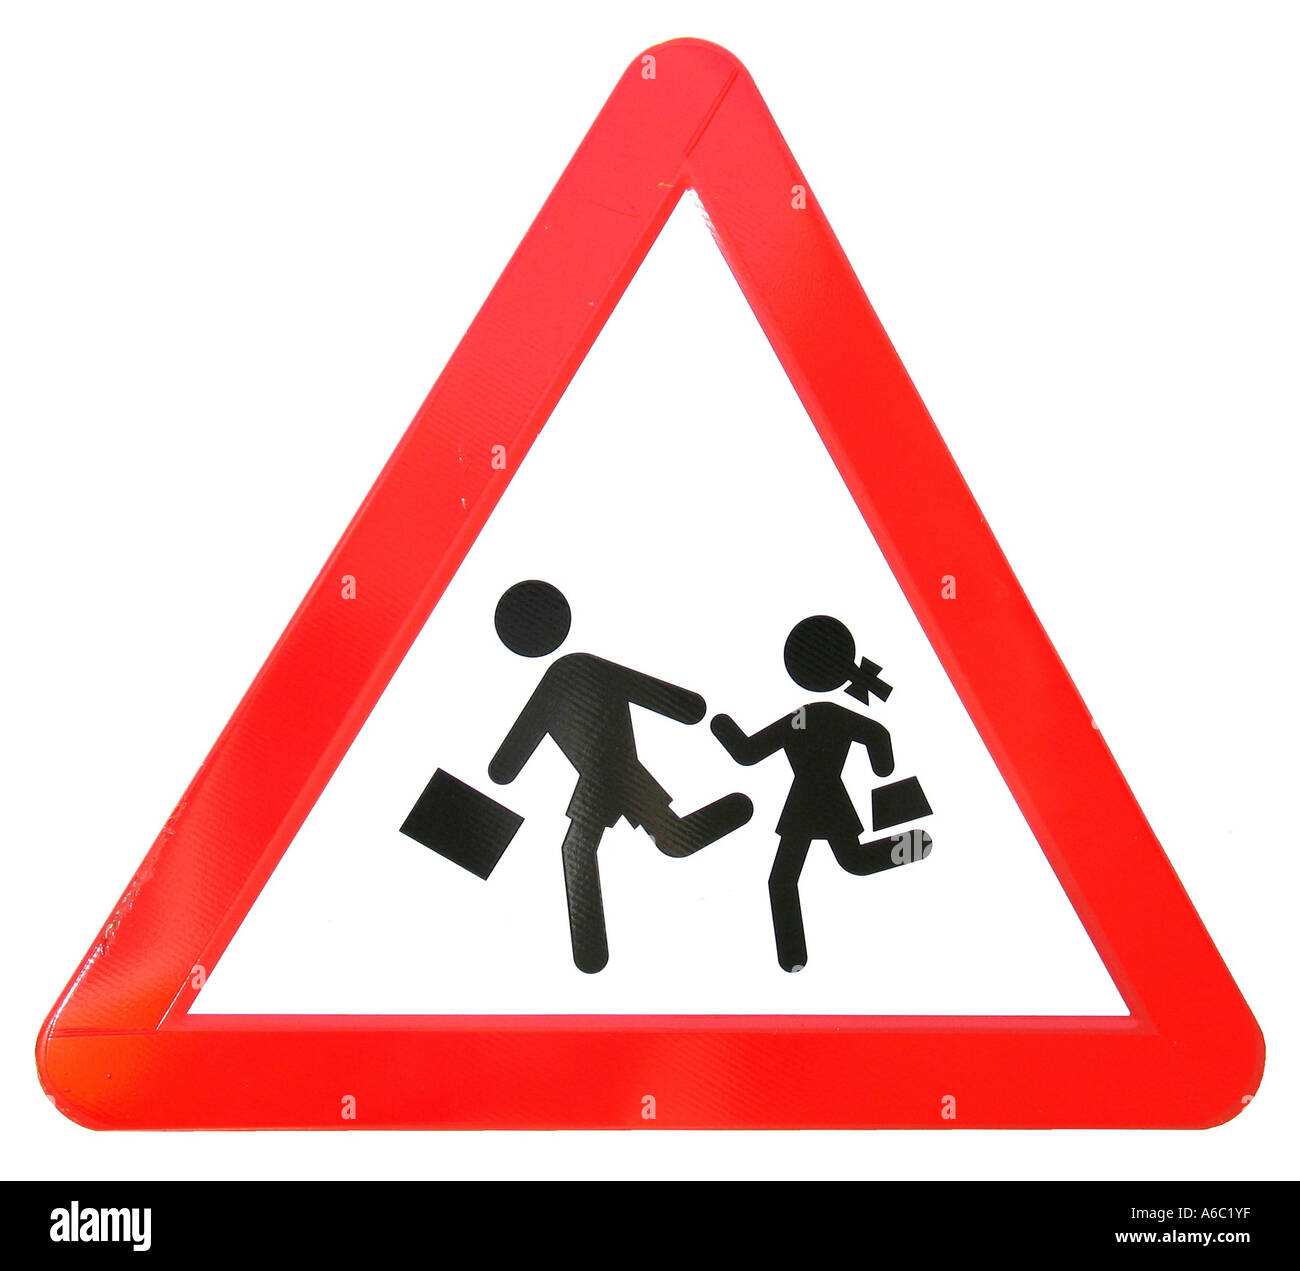 Take Care of Children Traffic Sign - Stock Image